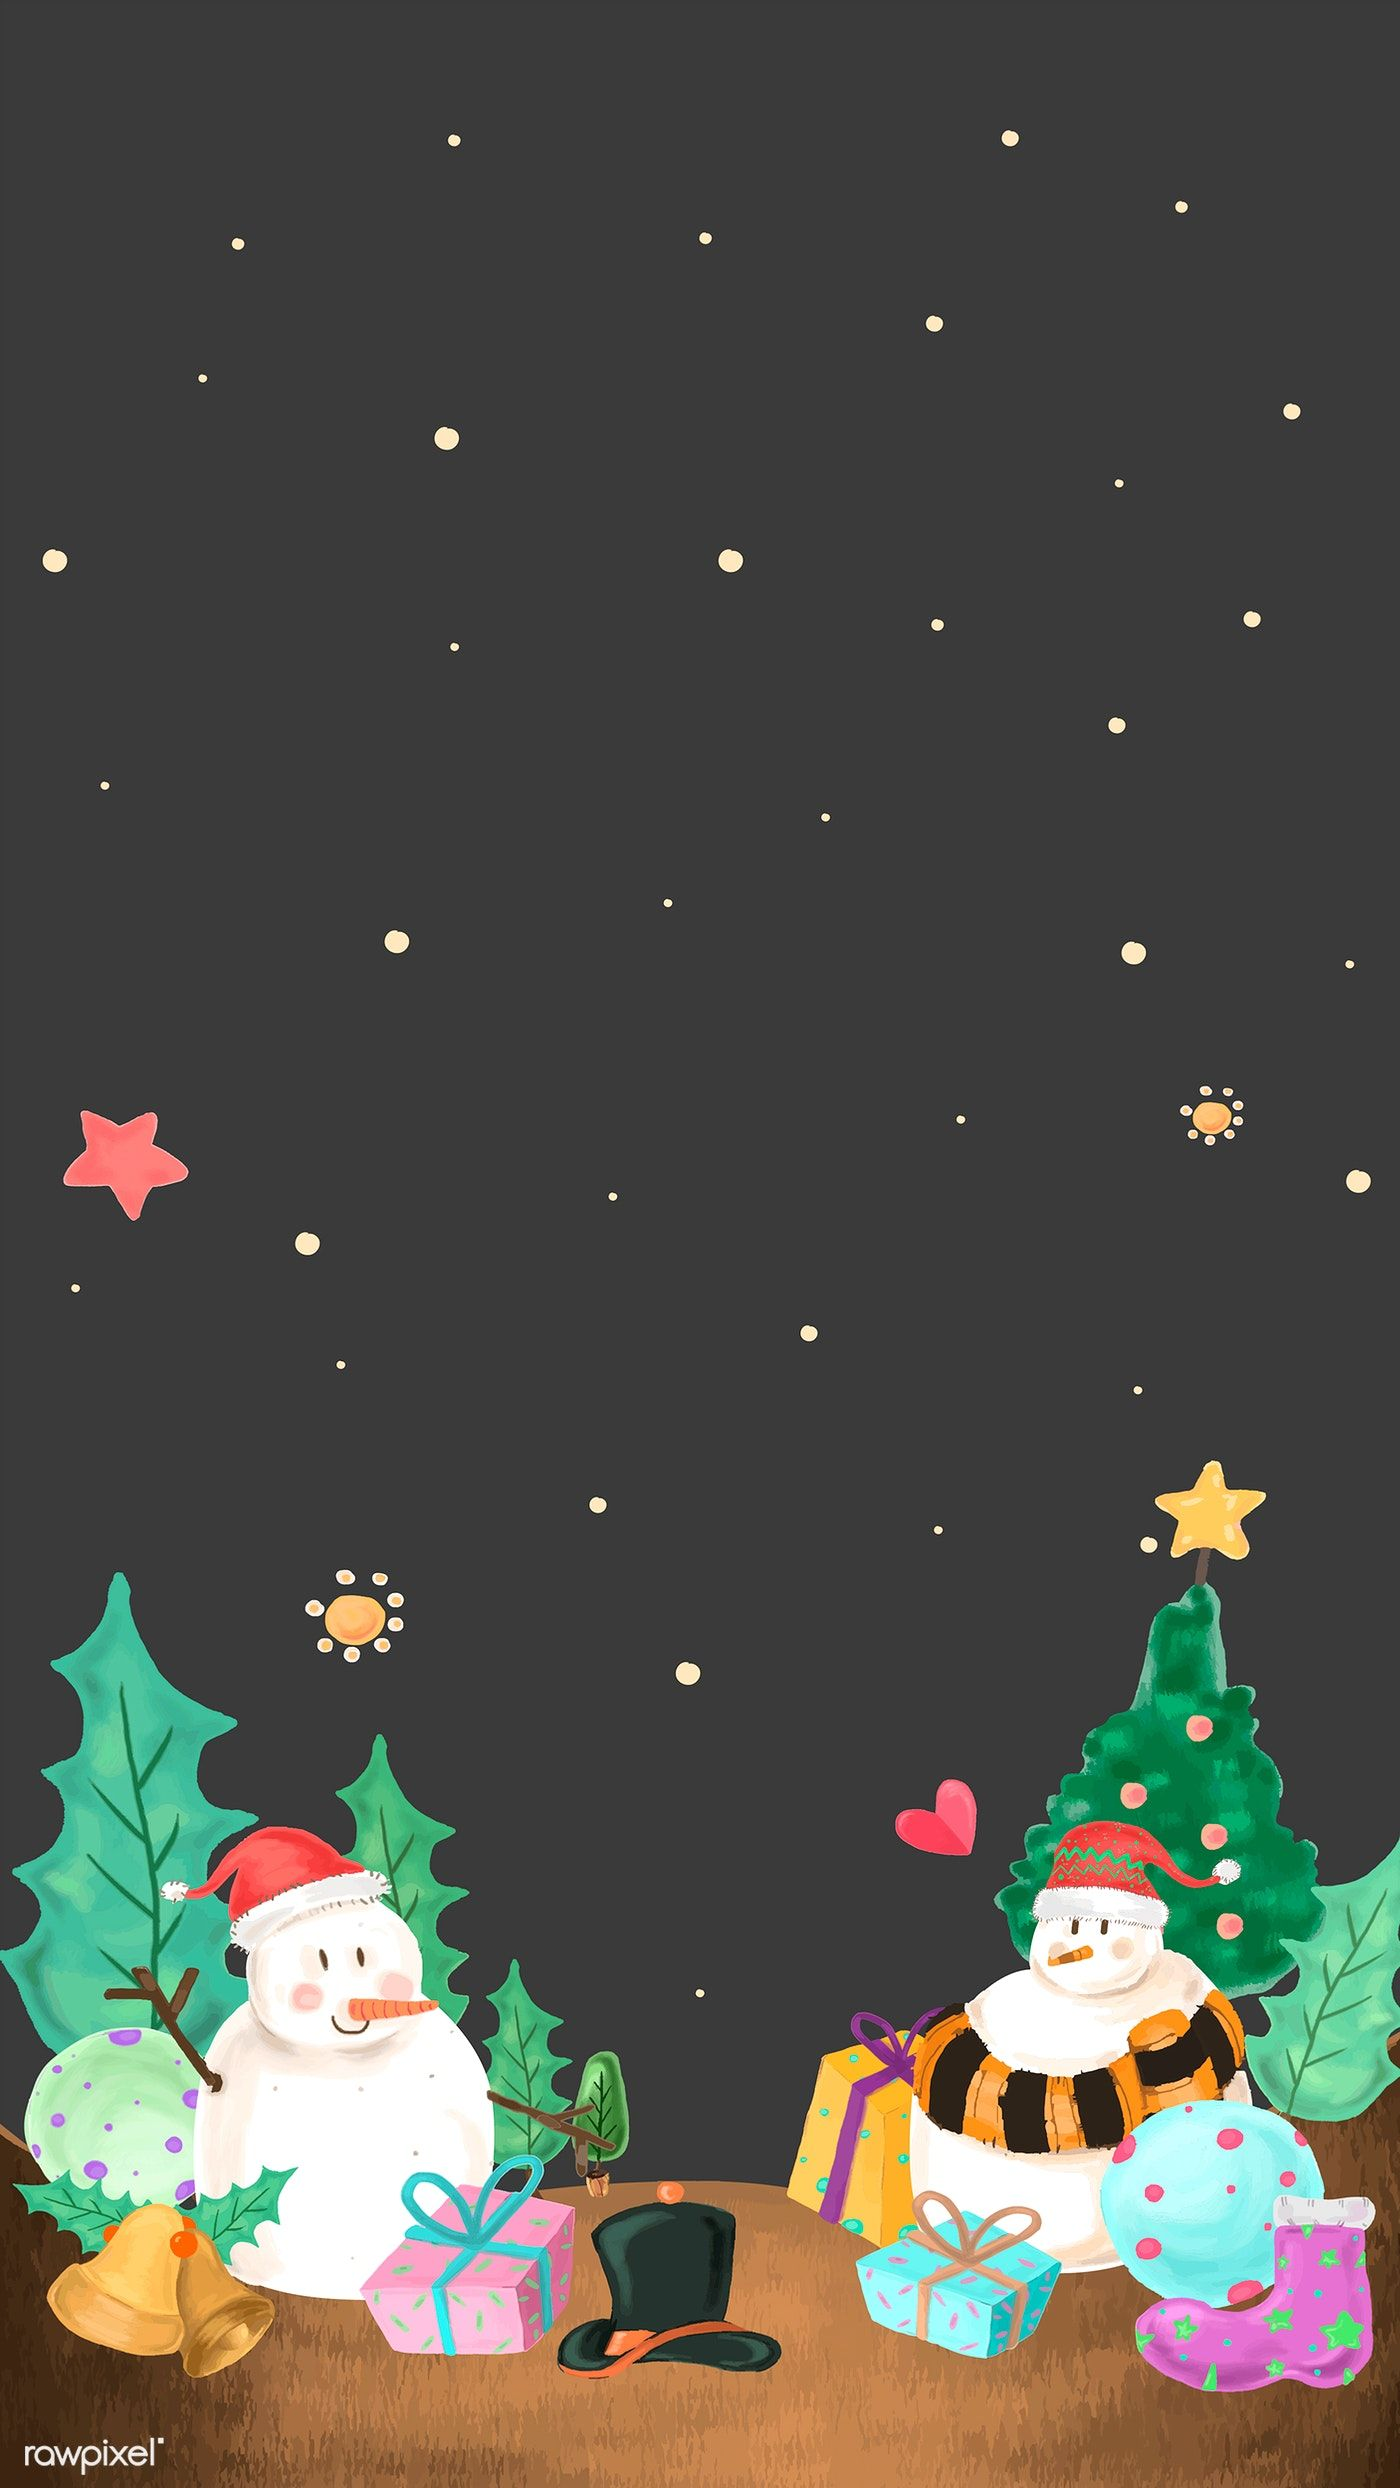 Download Premium Vector Of Cute Snowman On Christmas Night